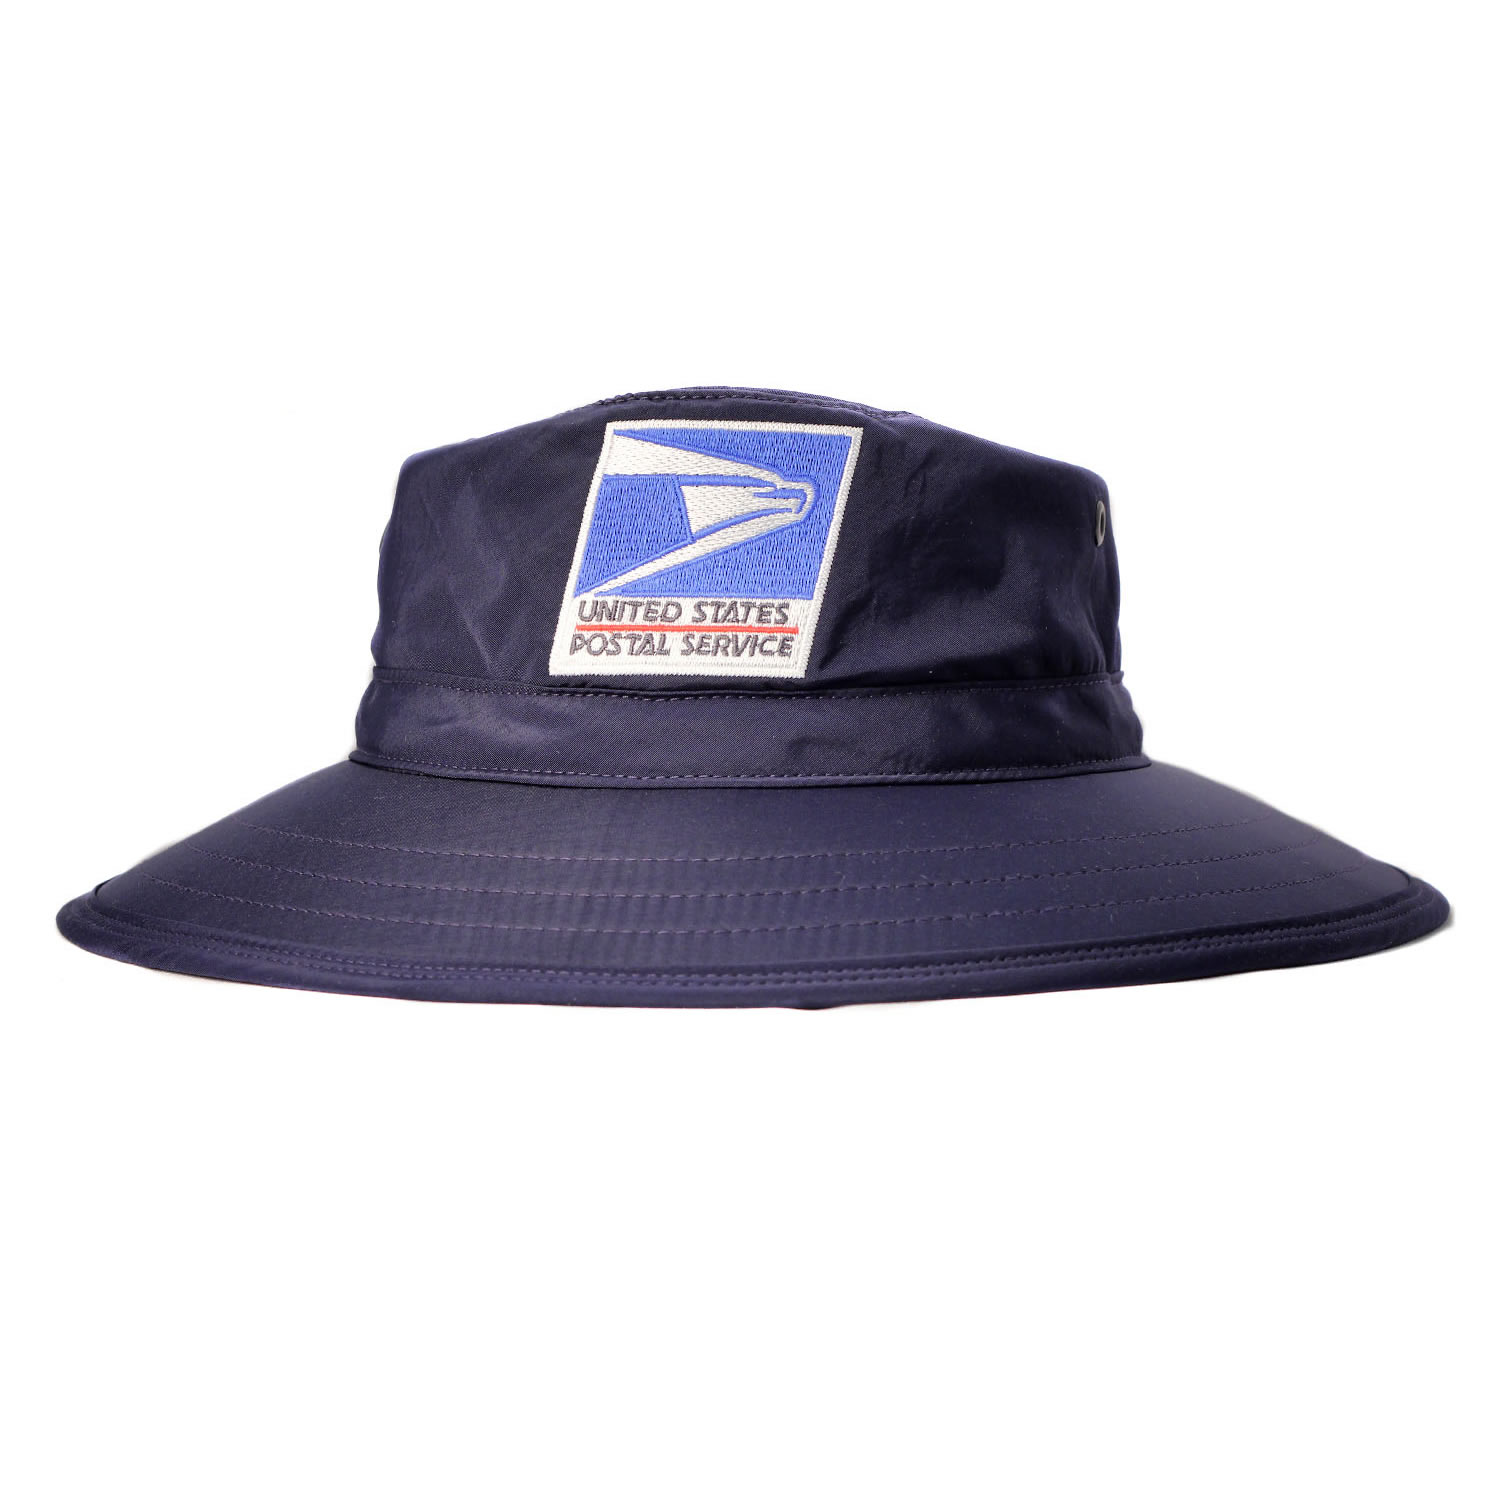 49150d5e885 Postal Uniform Sun Hat for Letter Carriers